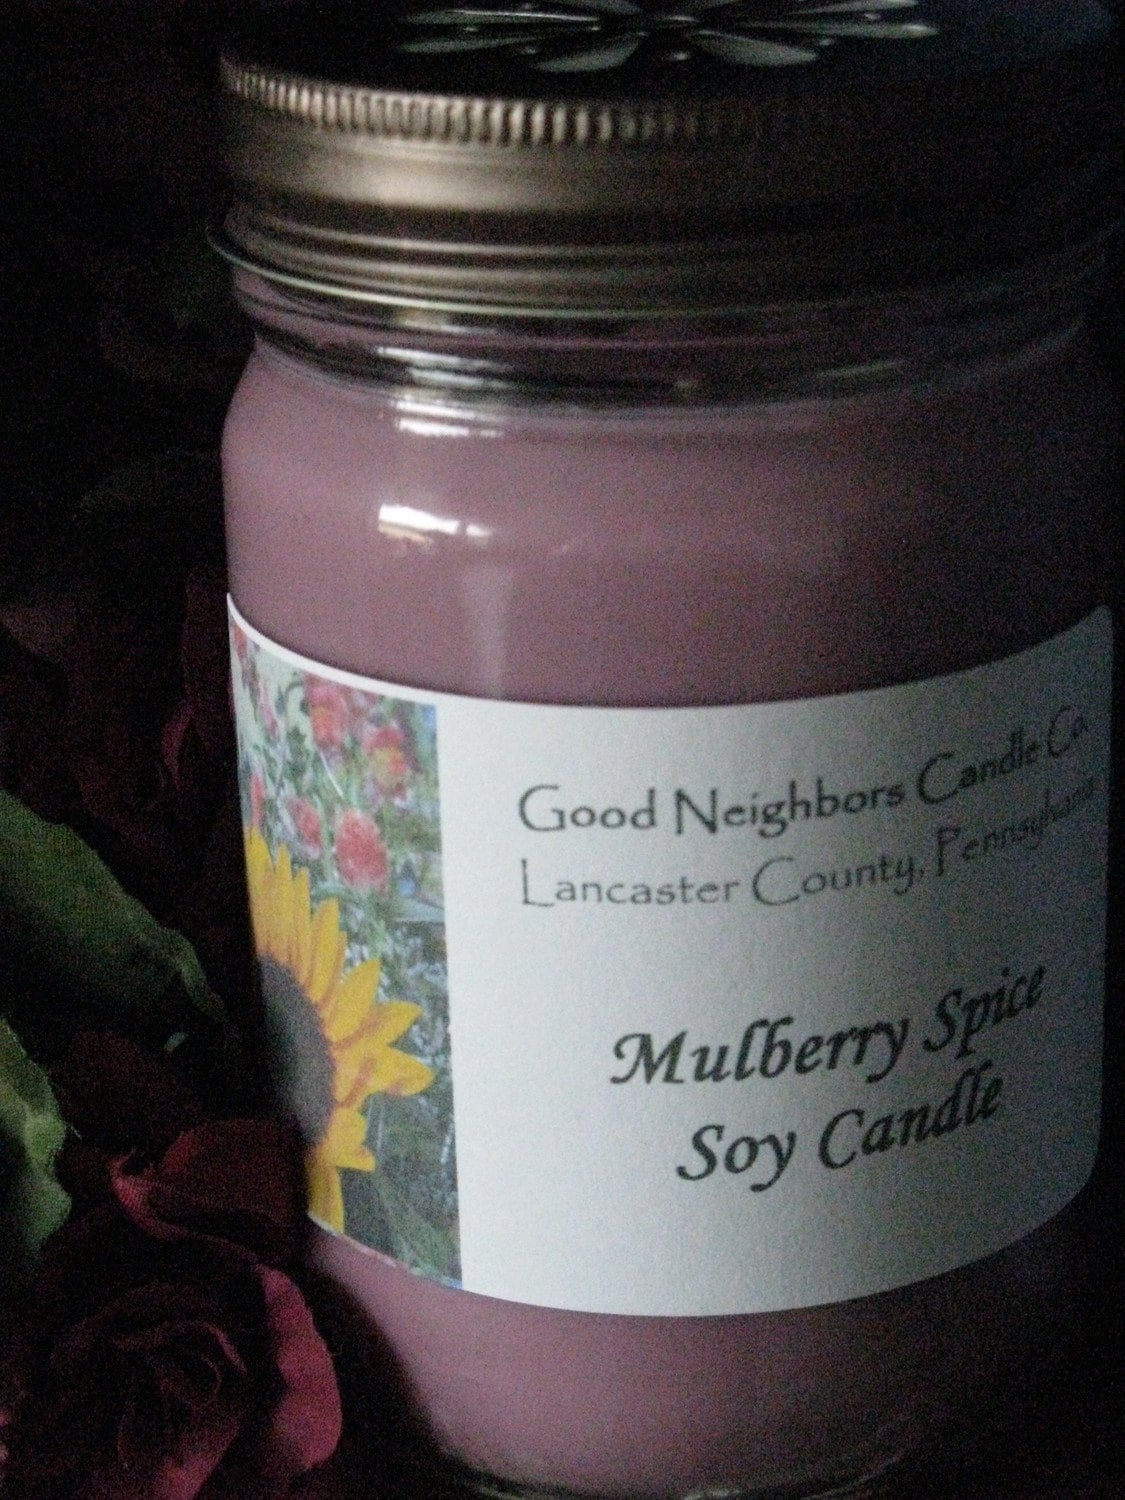 12 Ounce Mulberry Spice Soy Candle